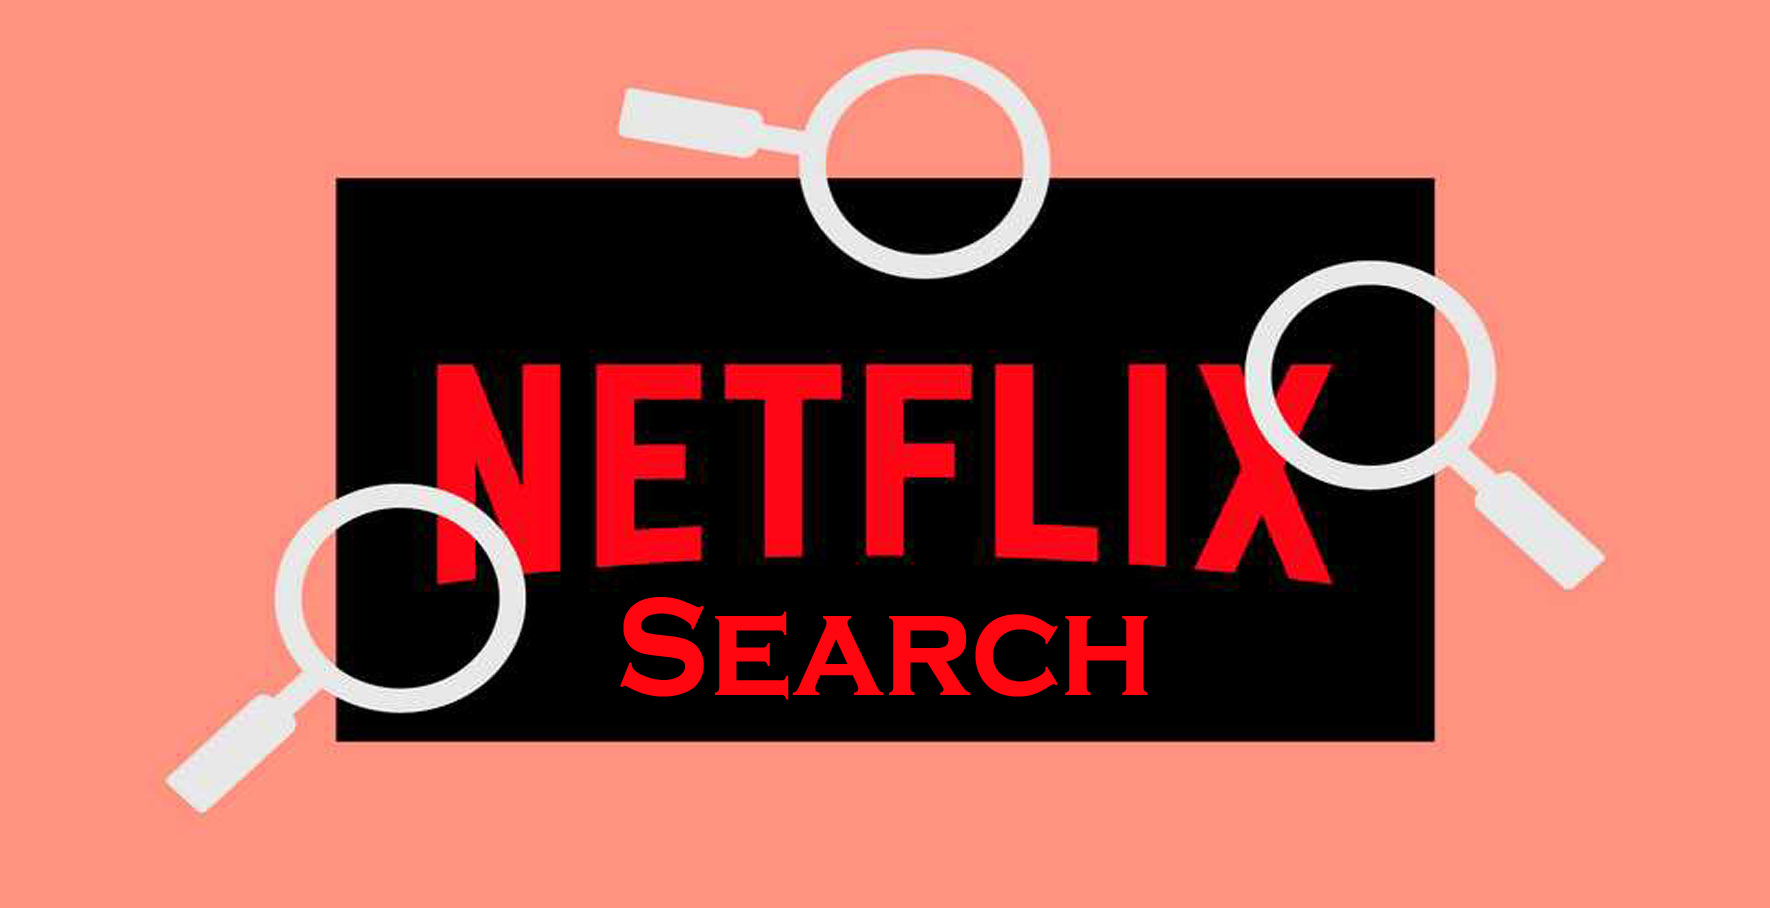 Netflix Search – How to Access Netflix Search